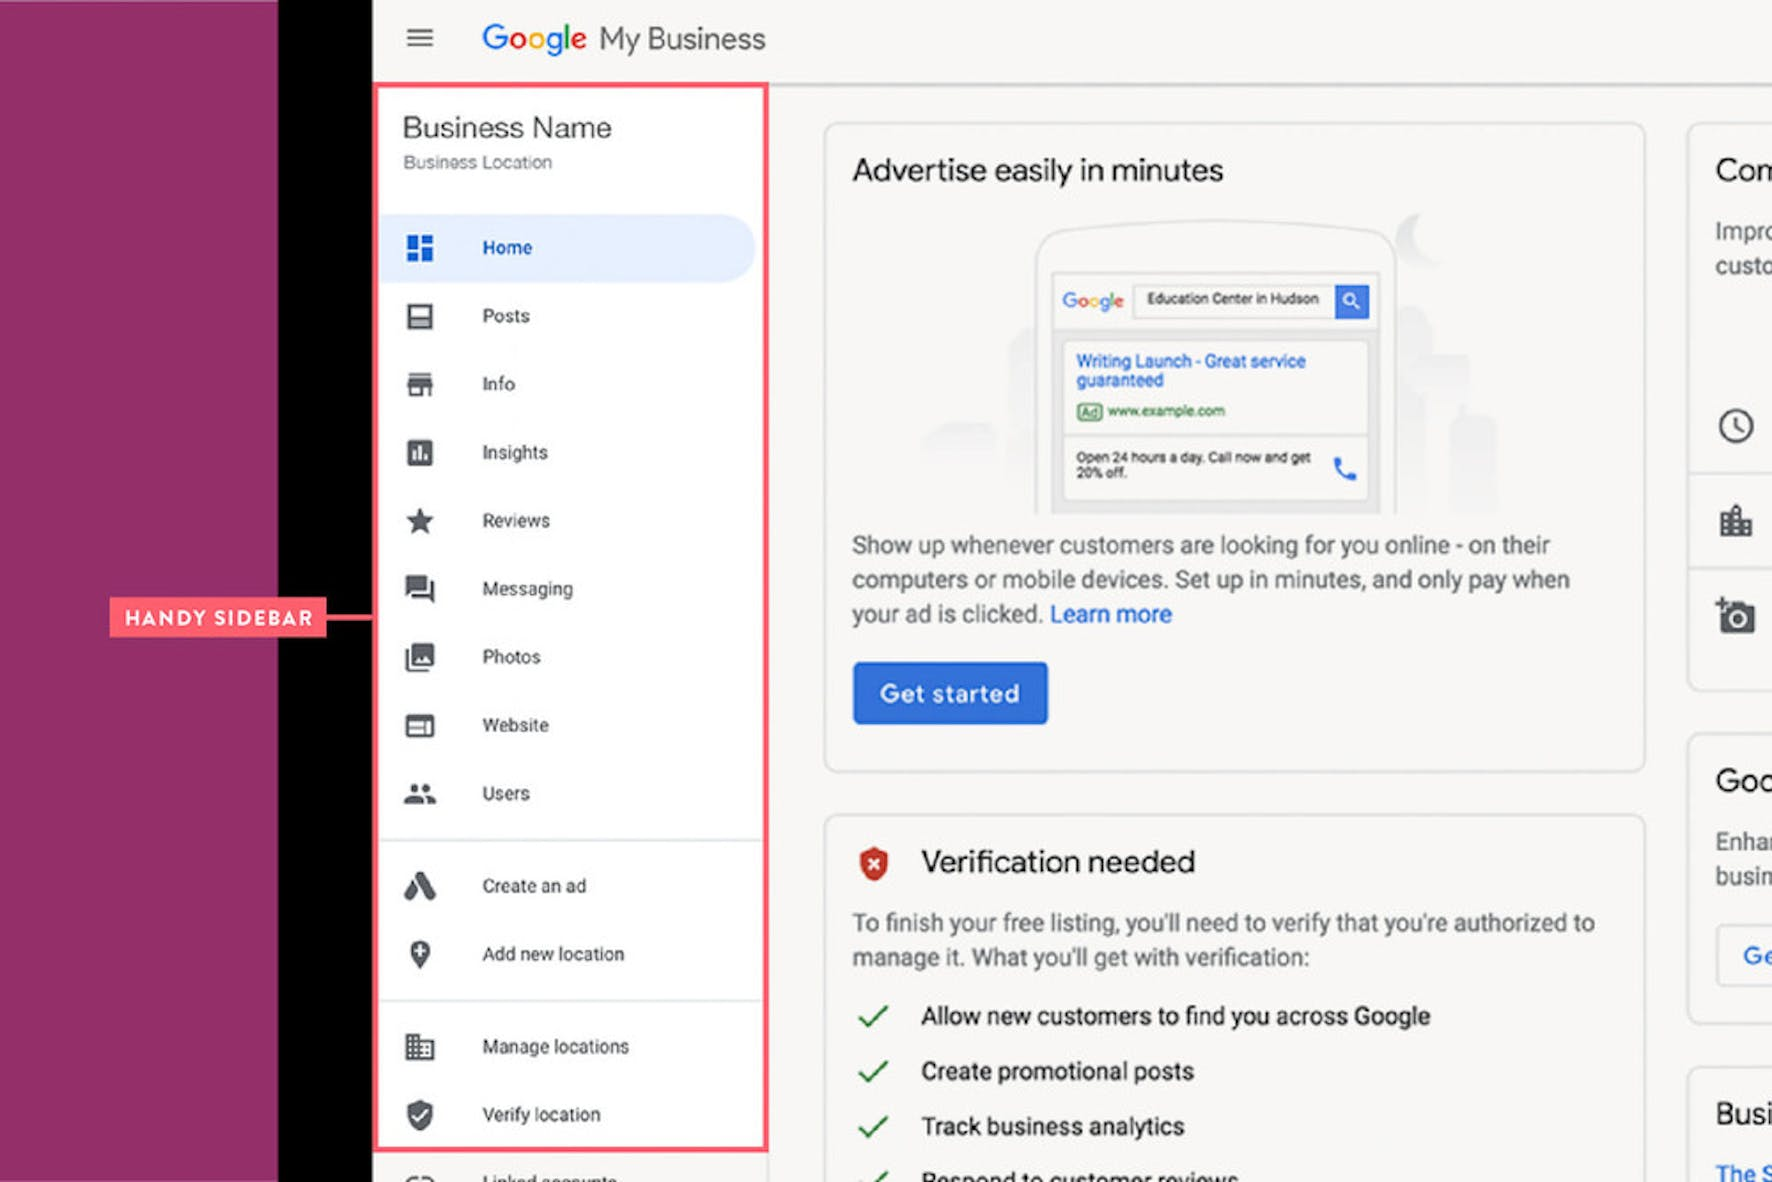 google my business handy sidebar screenshot